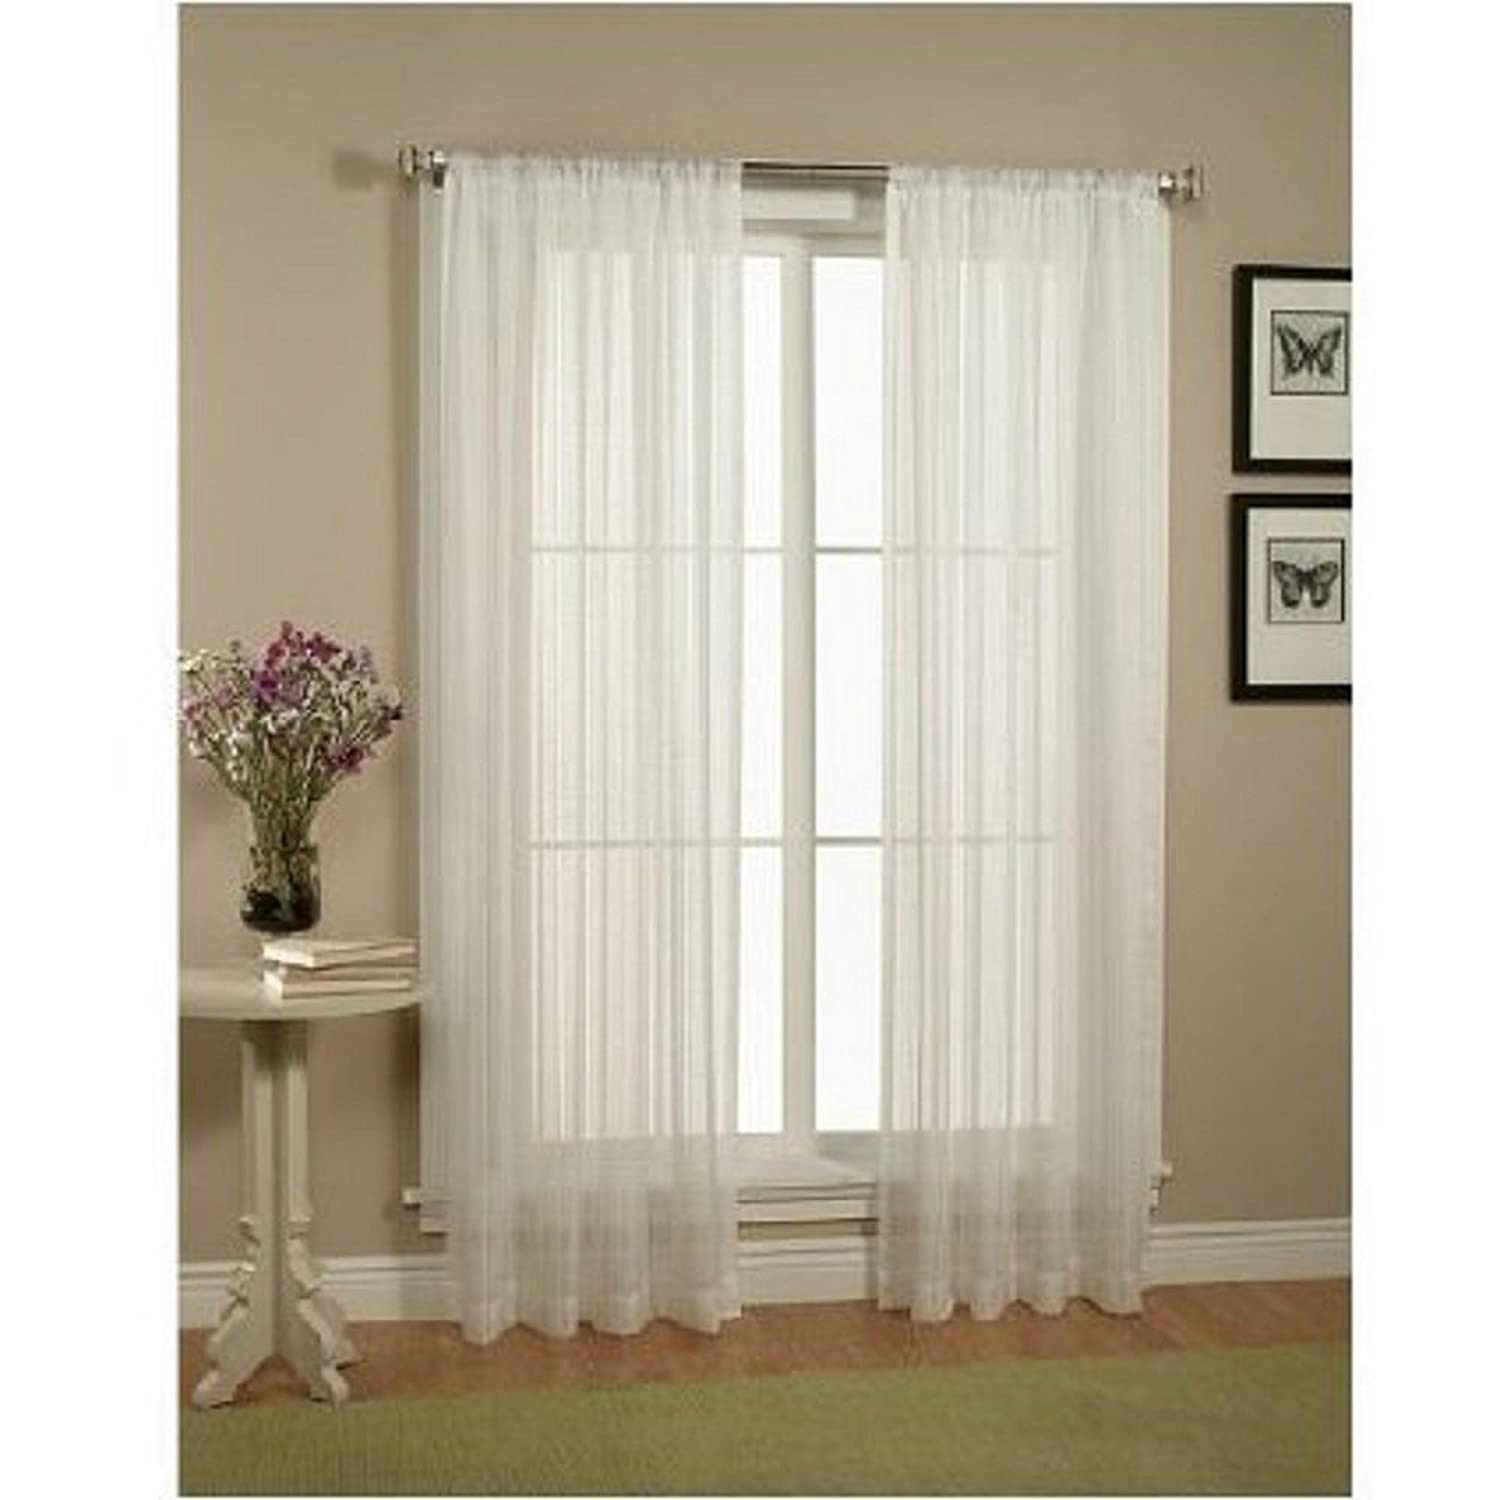 Amazoncom Elegant Comfort 2Piece Solid White Sheer Window